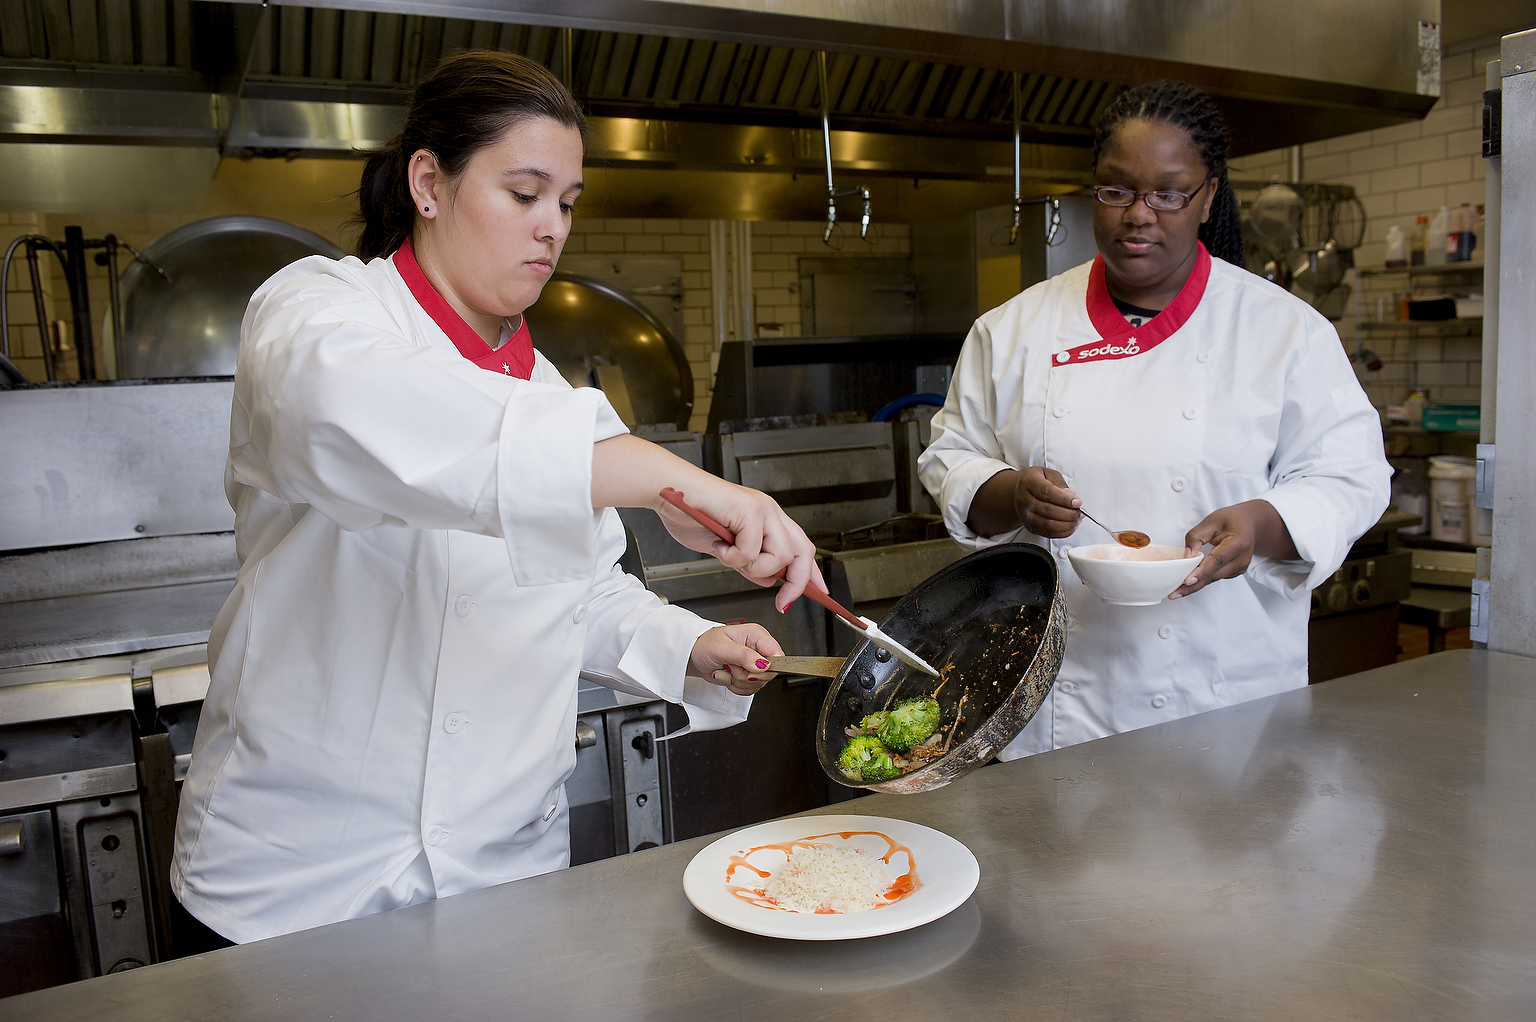 Dietetics And Food Service Management